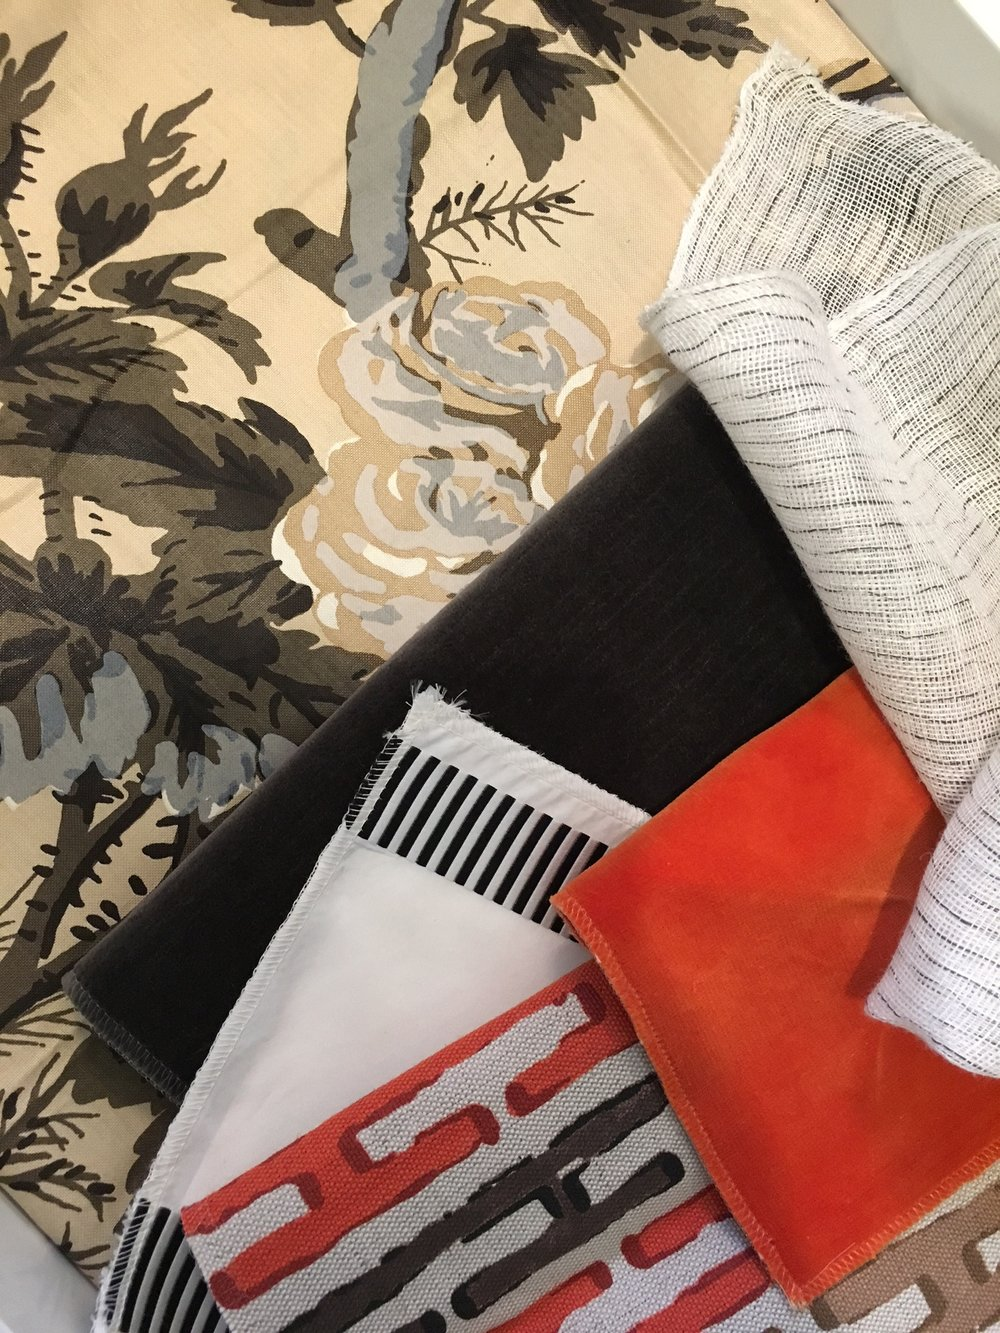 I posted this festive scheme this morning to Instagram.  I could see this making a beautiful den or library with the tobacco stained chintz as curtains with the gauzy sheers behind, orange velvet club chairs, striped silk pillows, black lacquered walls, a sisal rug, and lots of brass and wood accents.